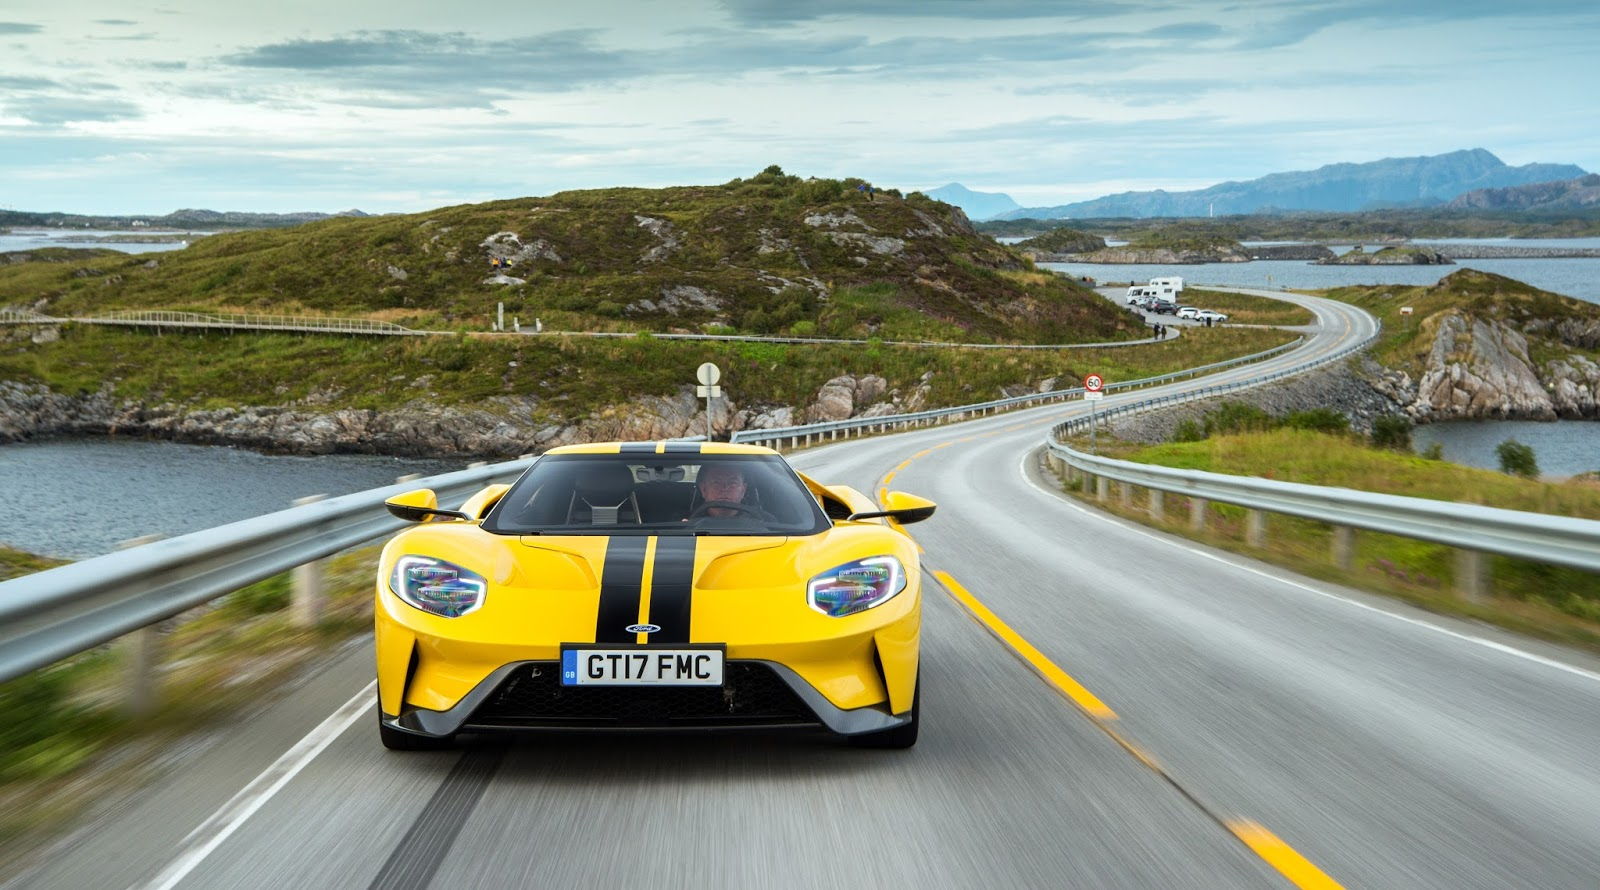 Ford Gt On The Atlantic Ocean Road Norway